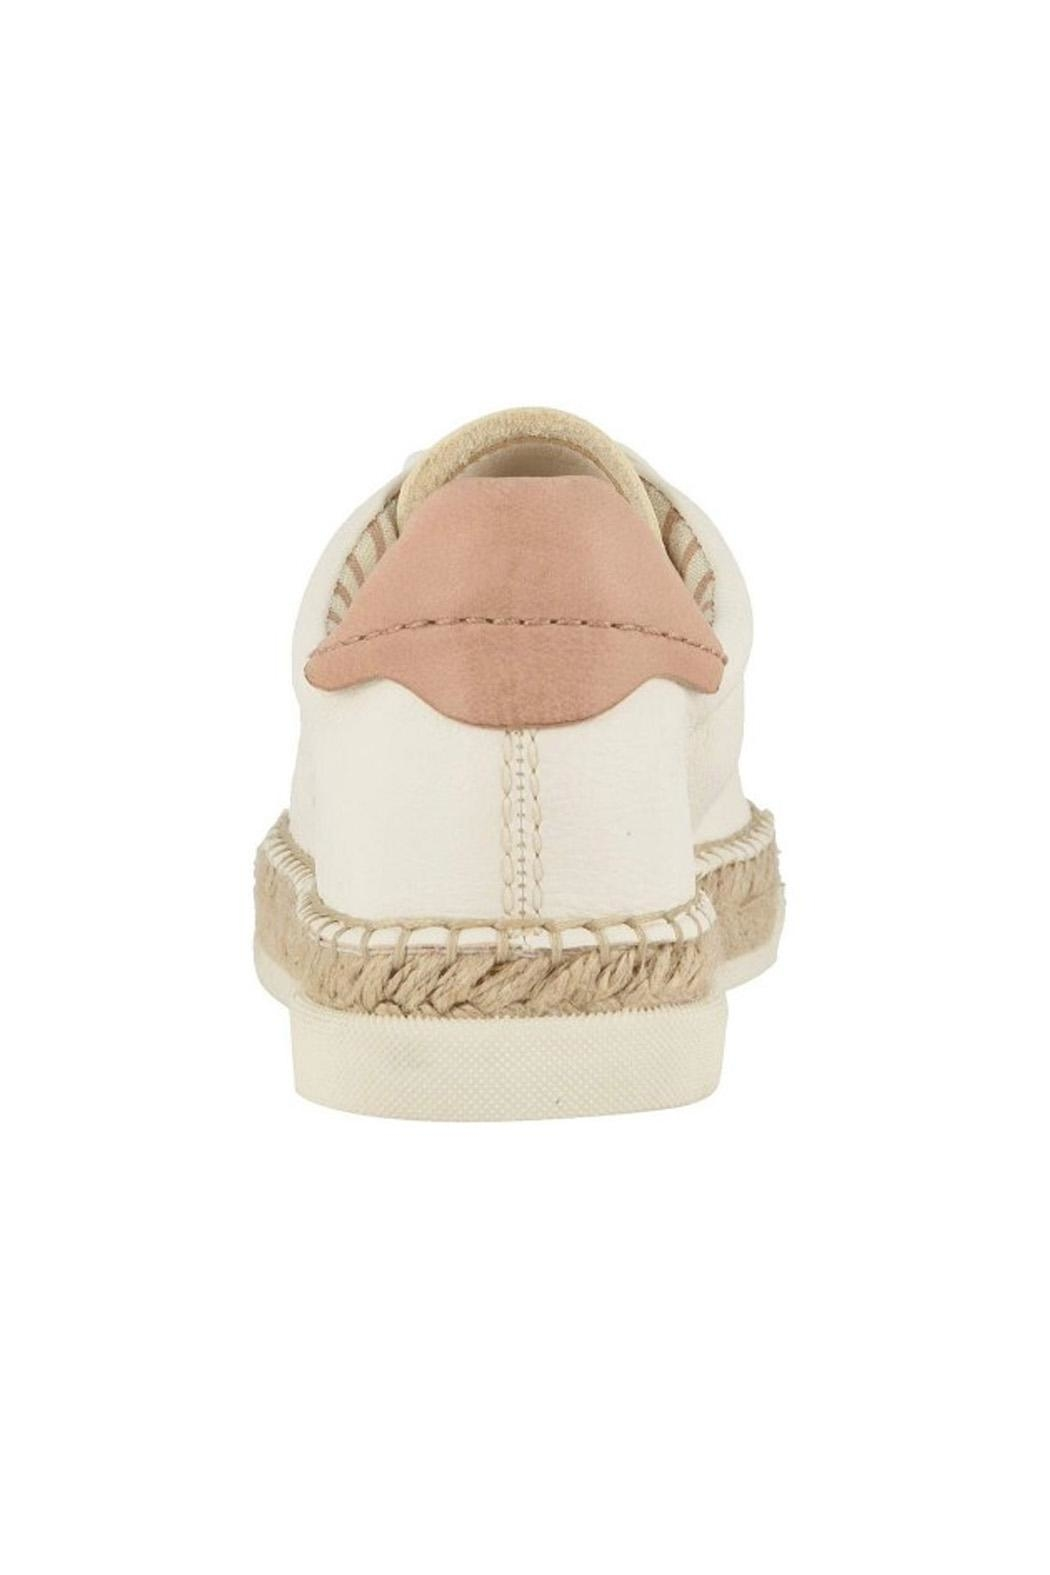 Dolce Vita Ivory Leather Sneakers - Front Full Image